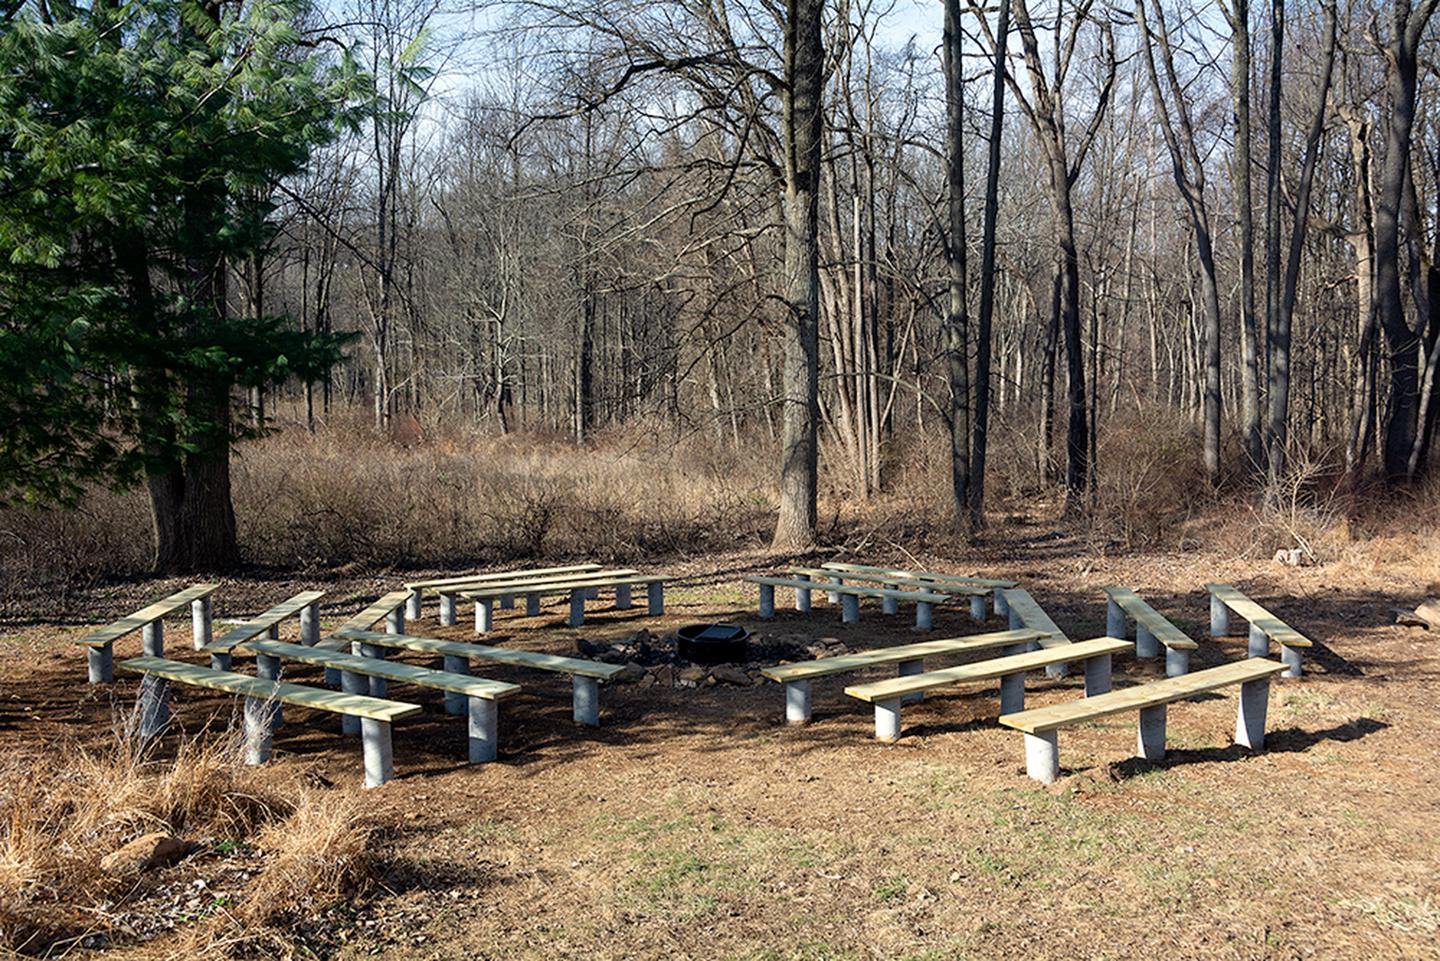 Outdoor fire pit with 18 wooden benches on concrete posts in circular pattern.  Center of circle has a metal fire ring/grill. Winter photo, surrounding trees  have no leaves.The peaceful outdoor fire circle has 18 new wooden benches and a wood shed.